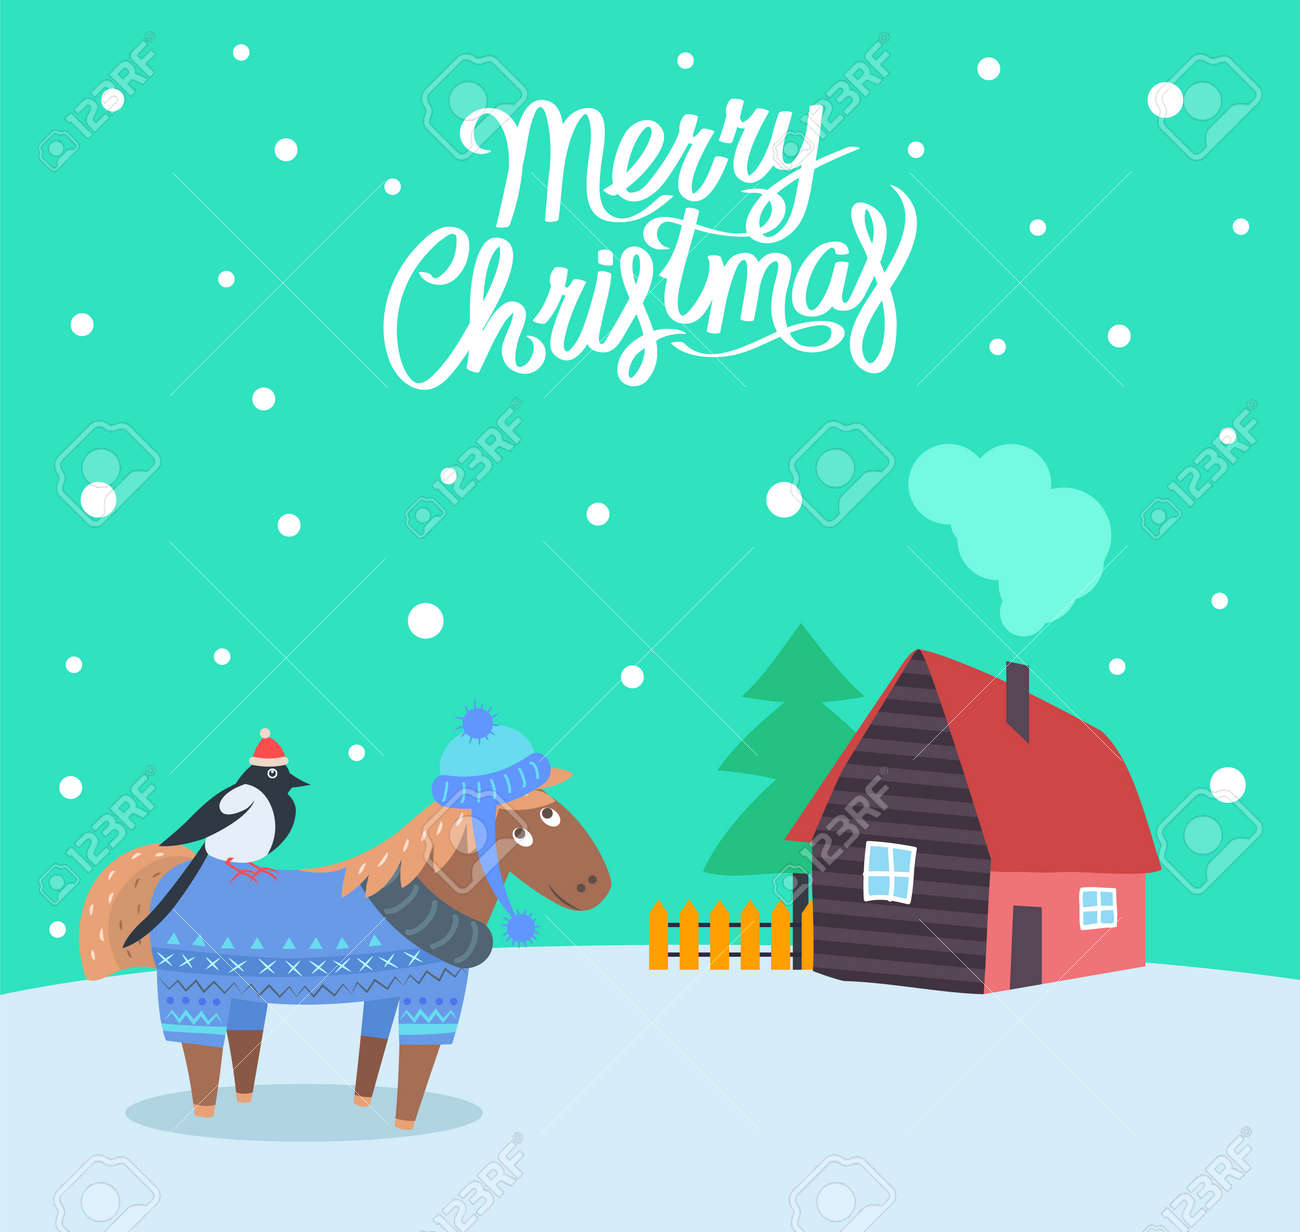 Merry Christmas Greeting Poster With Animals Vector Celebration Royalty Free Cliparts Vectors And Stock Illustration Image 126096710